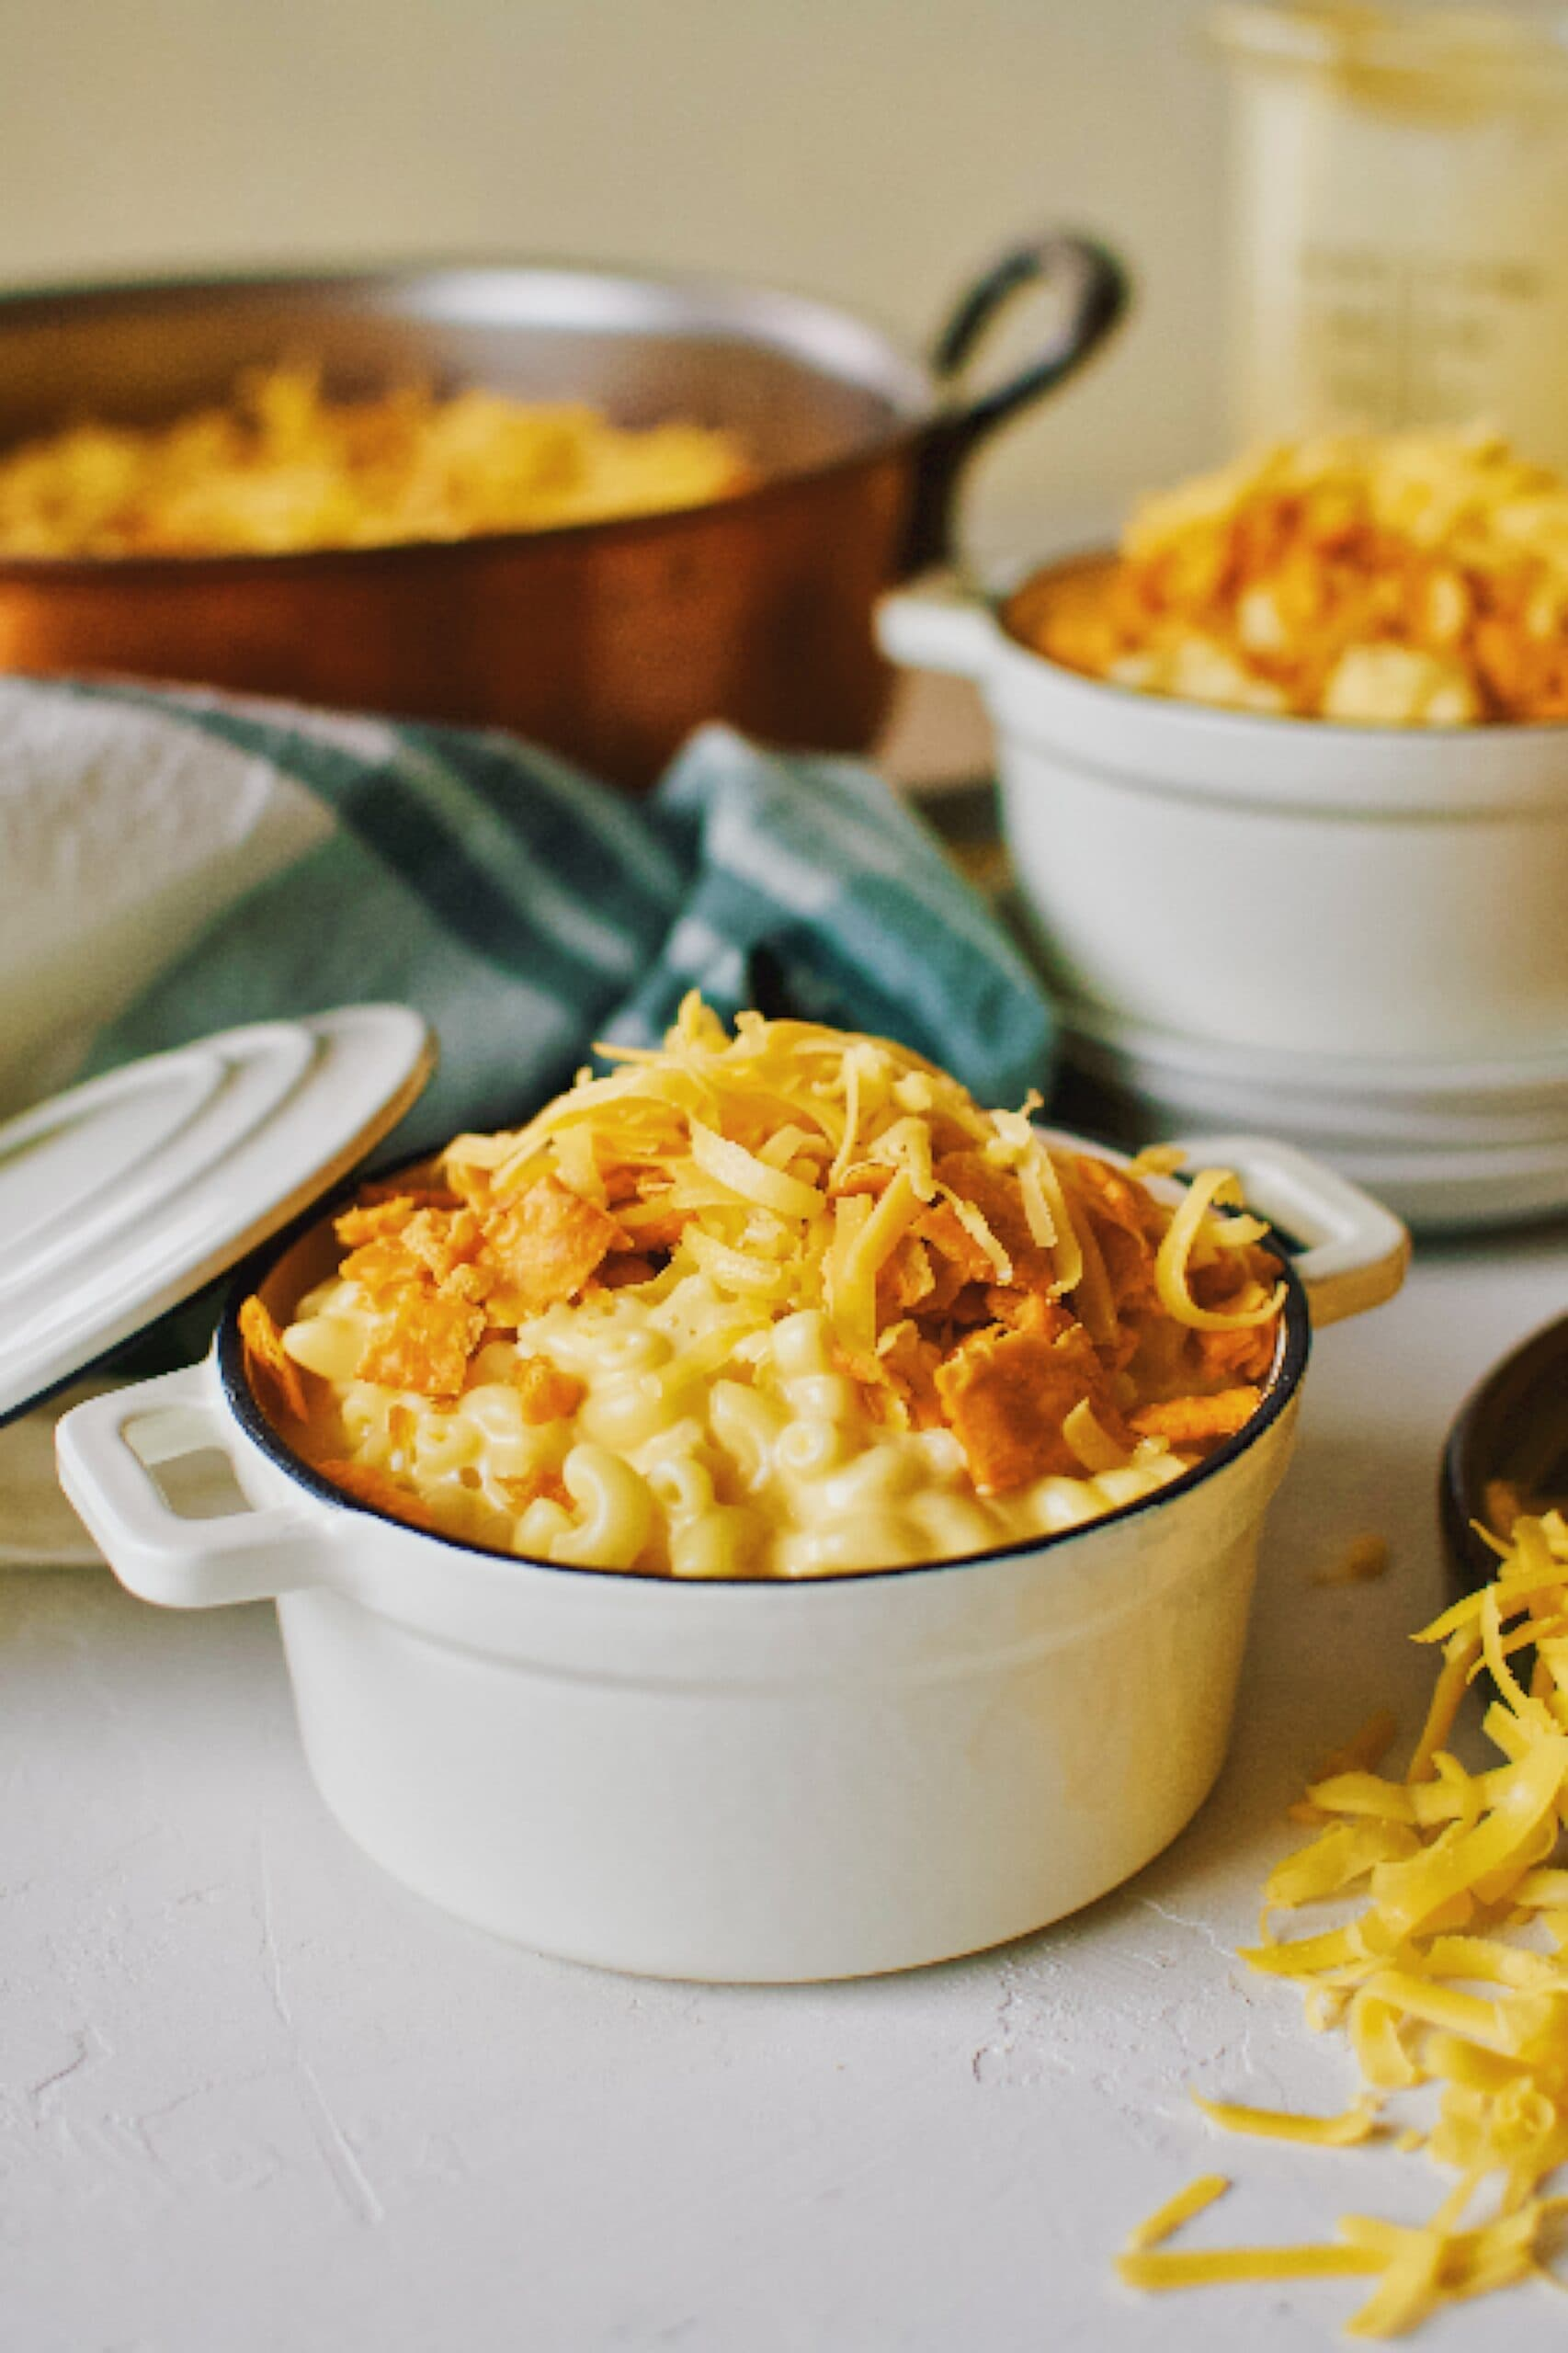 Cheez-It mac and cheese made with cheddar syrup in mini dutch ovens topped with cheese crackers and cheddar cheese.